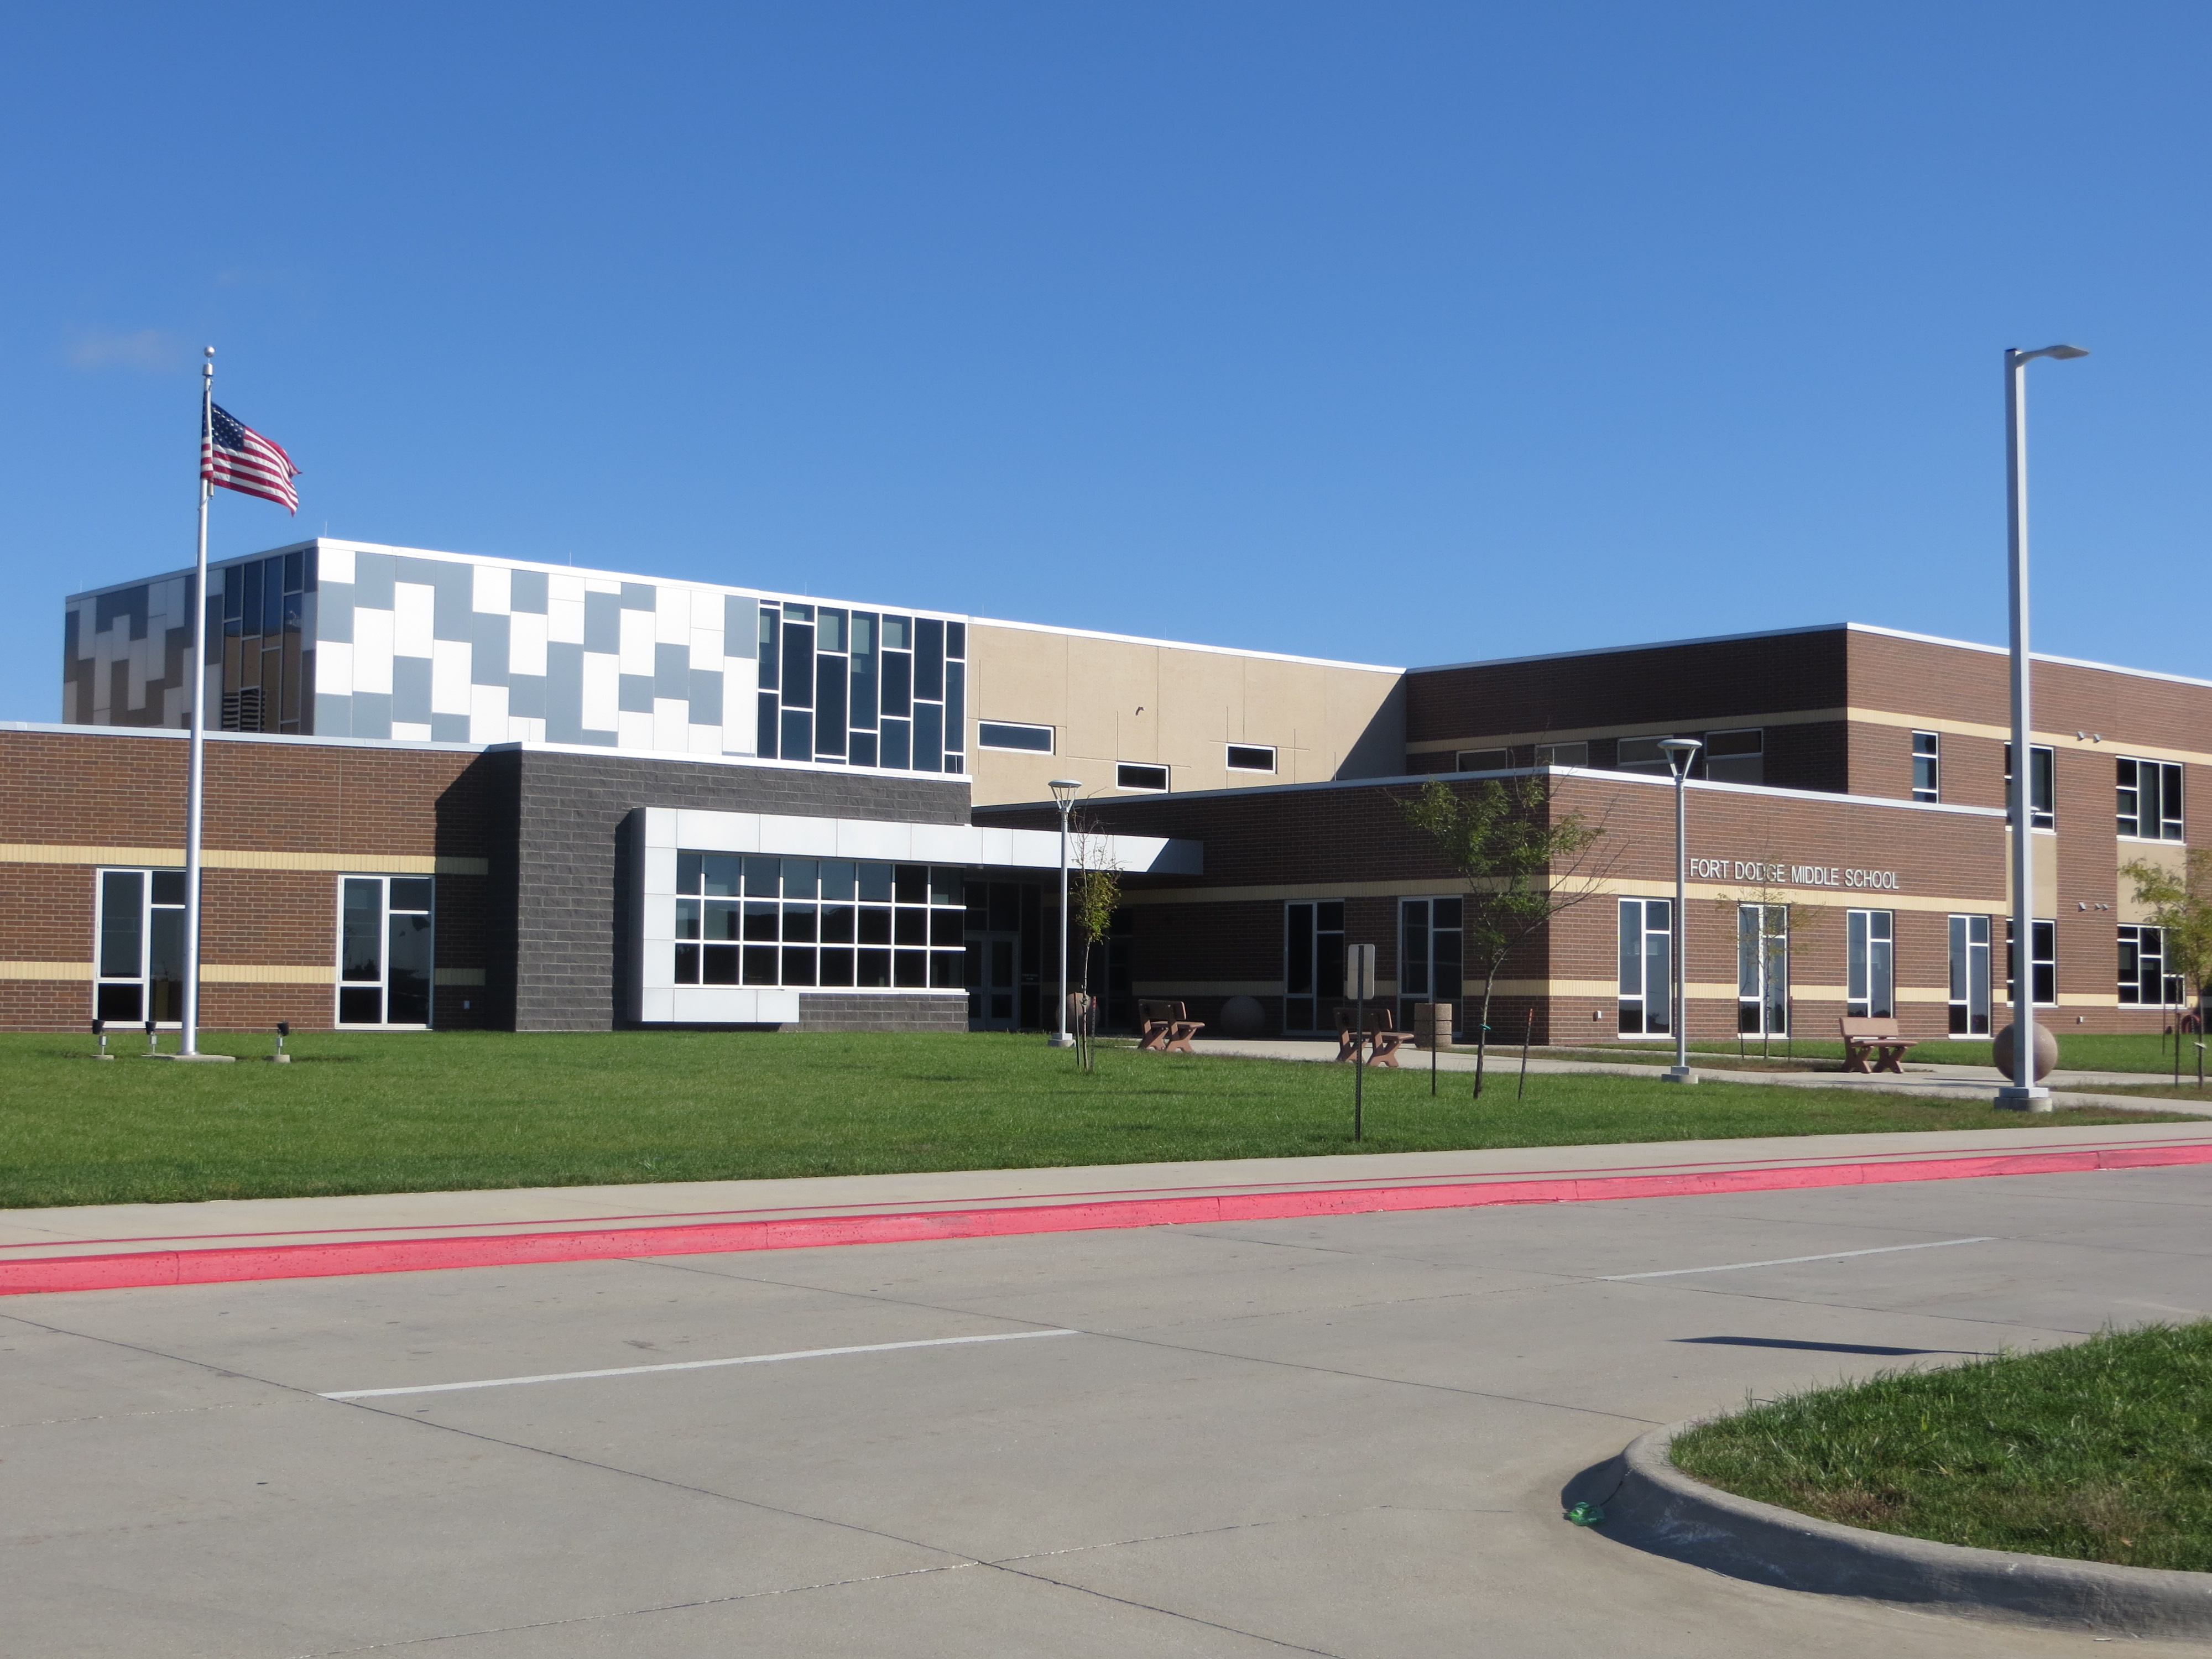 exterior of middle school main entrance